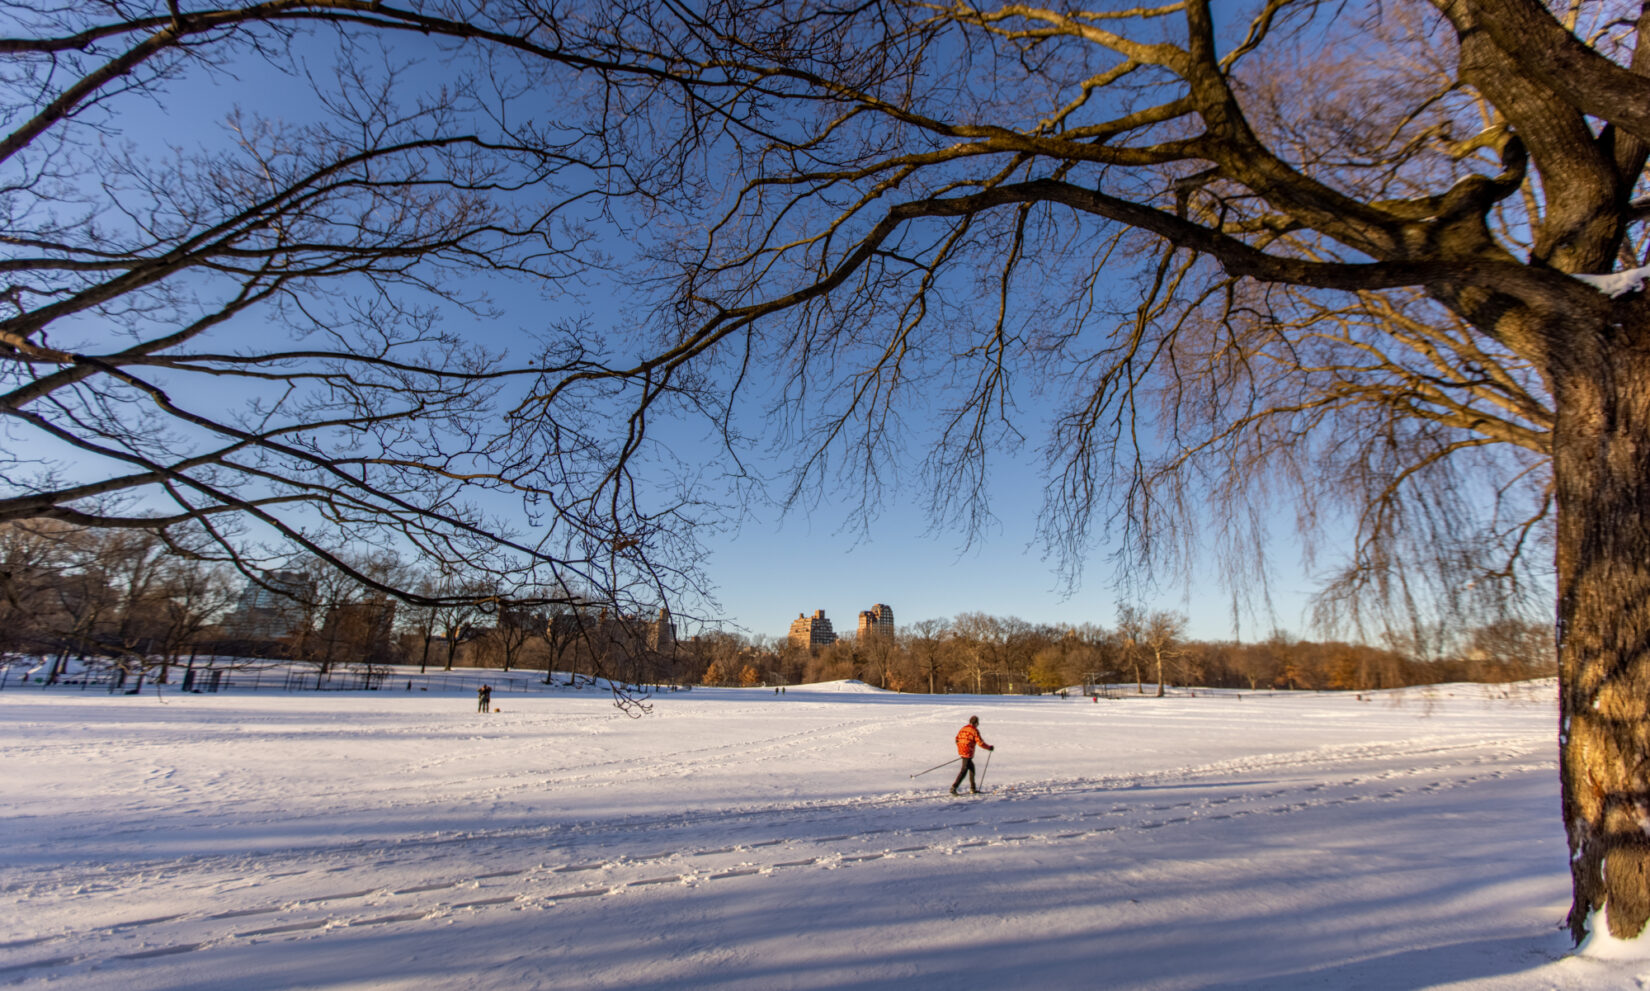 A cross-country skier treks across North Meadow under a crisp winter blue sky